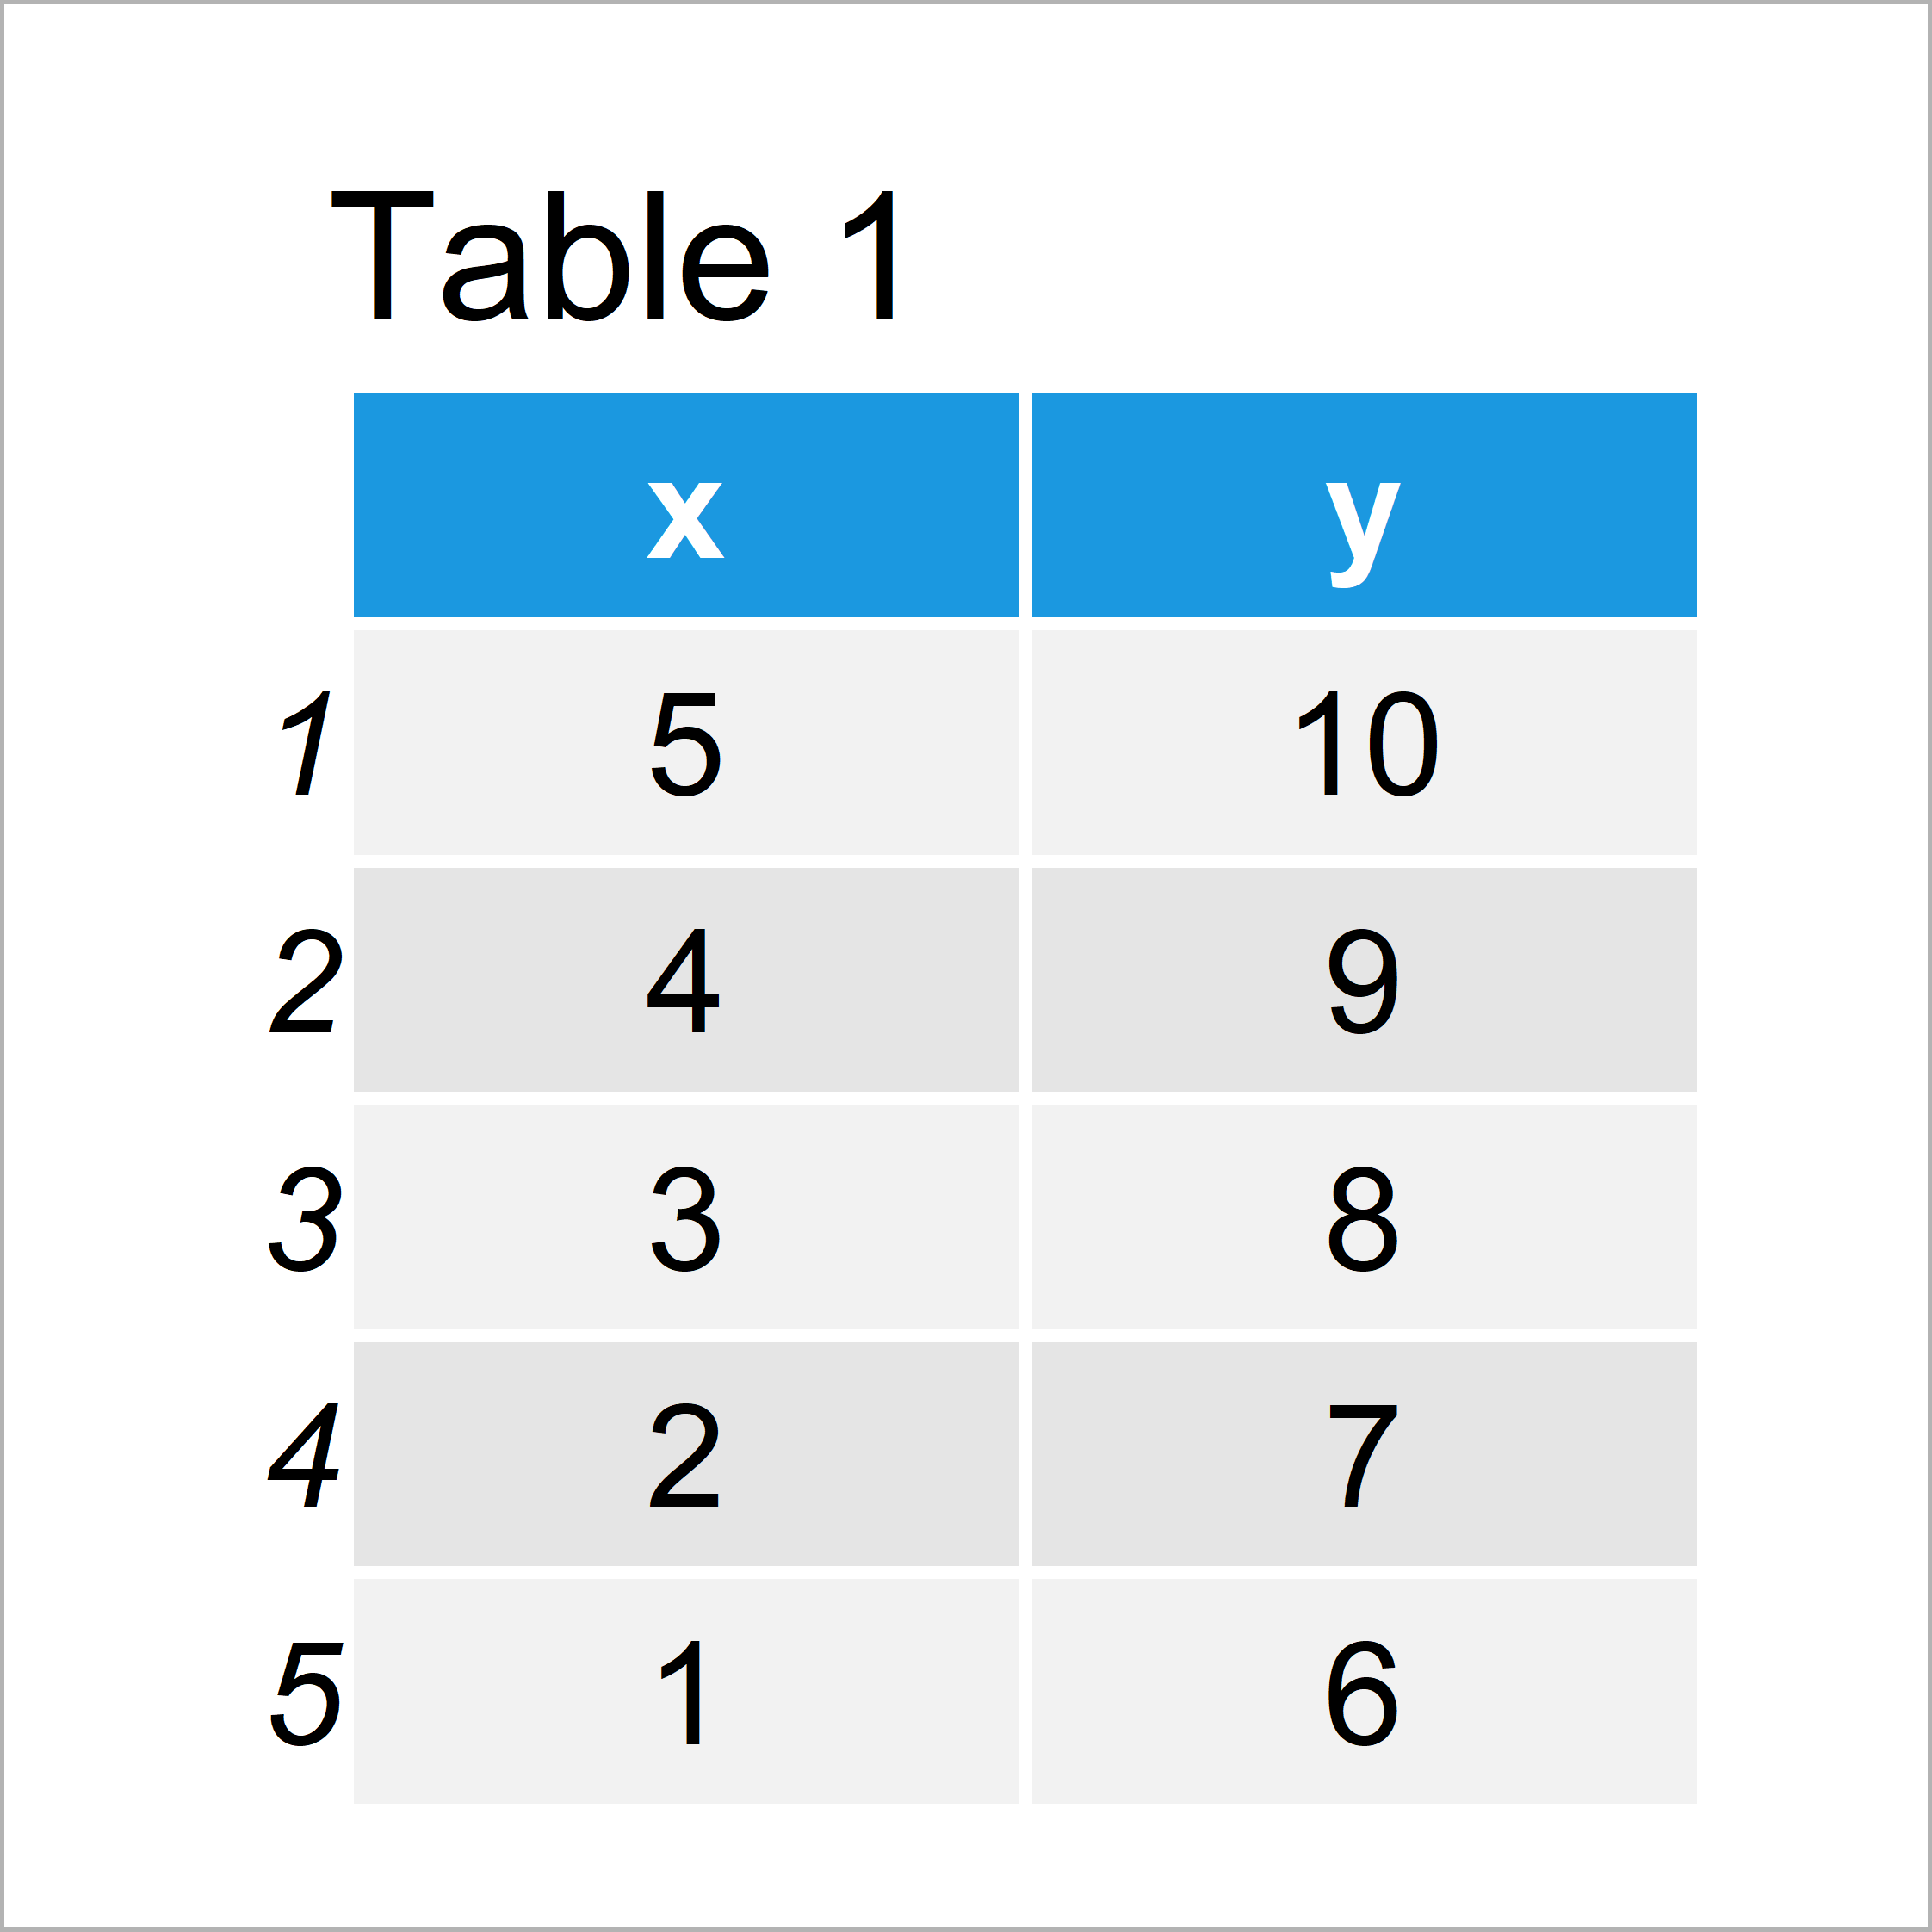 table 1 data frame r ggplot2 error mapping should be created aes